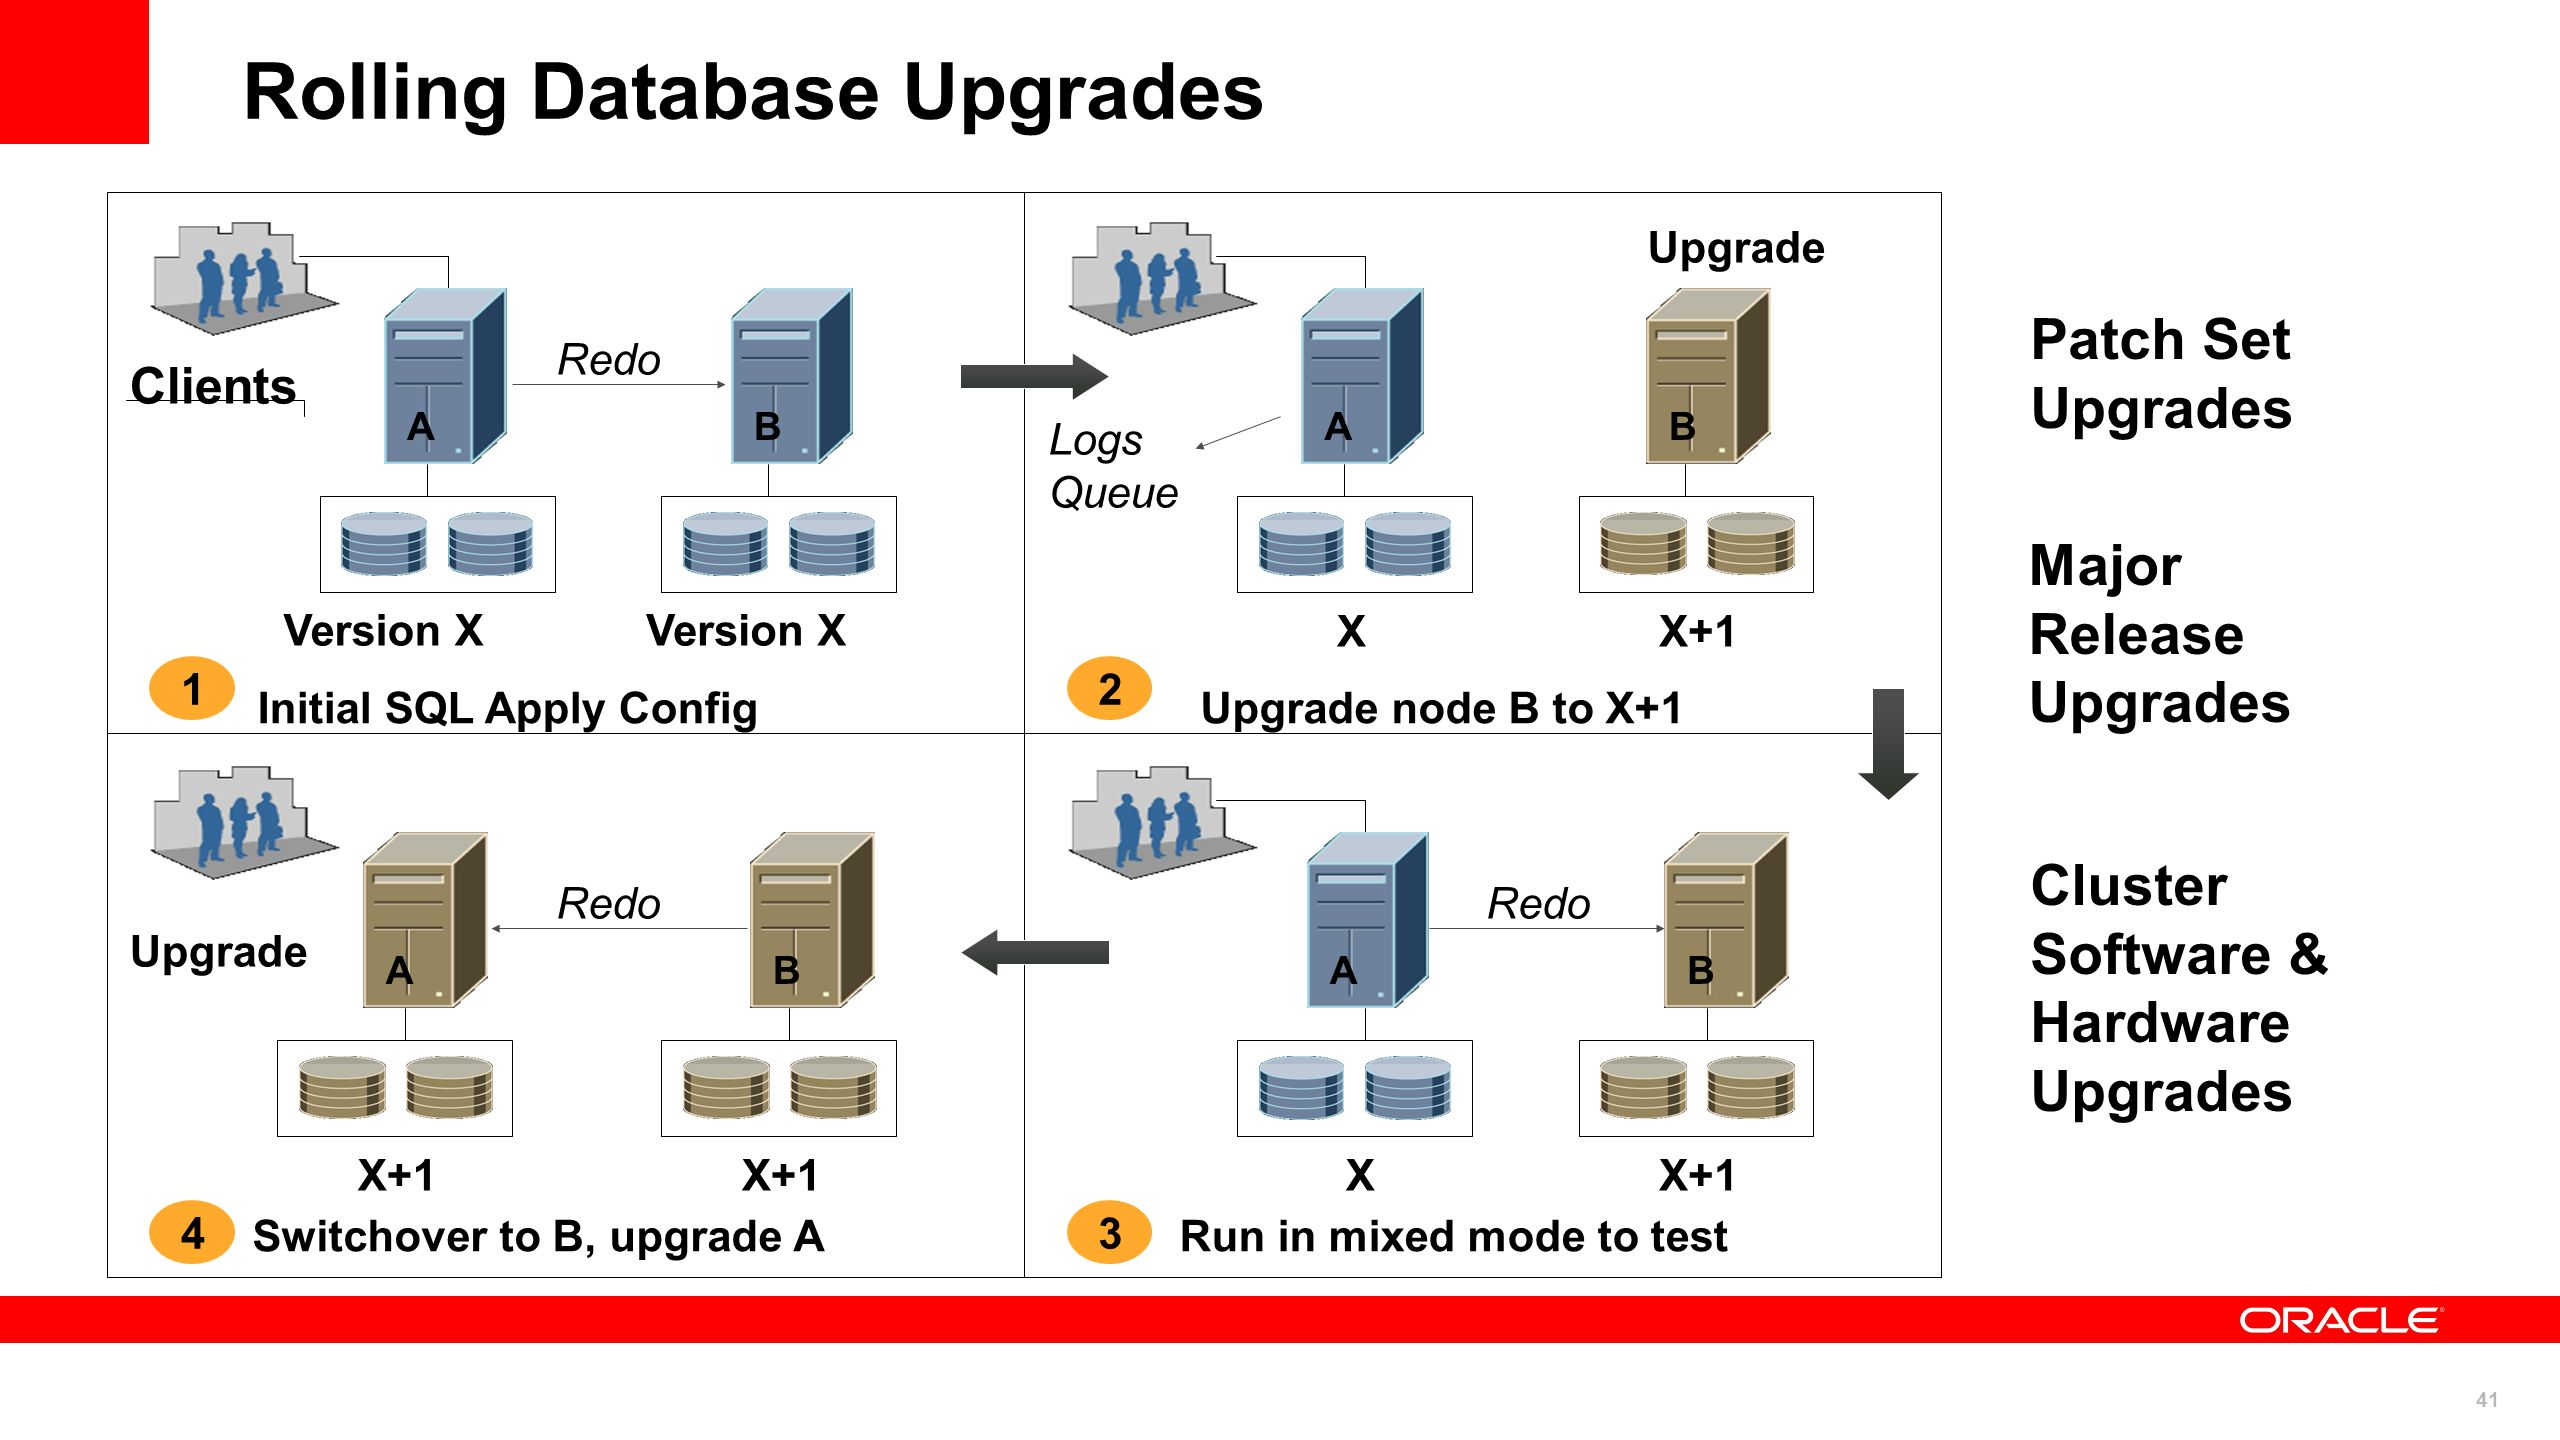 Rolling Database Upgrades